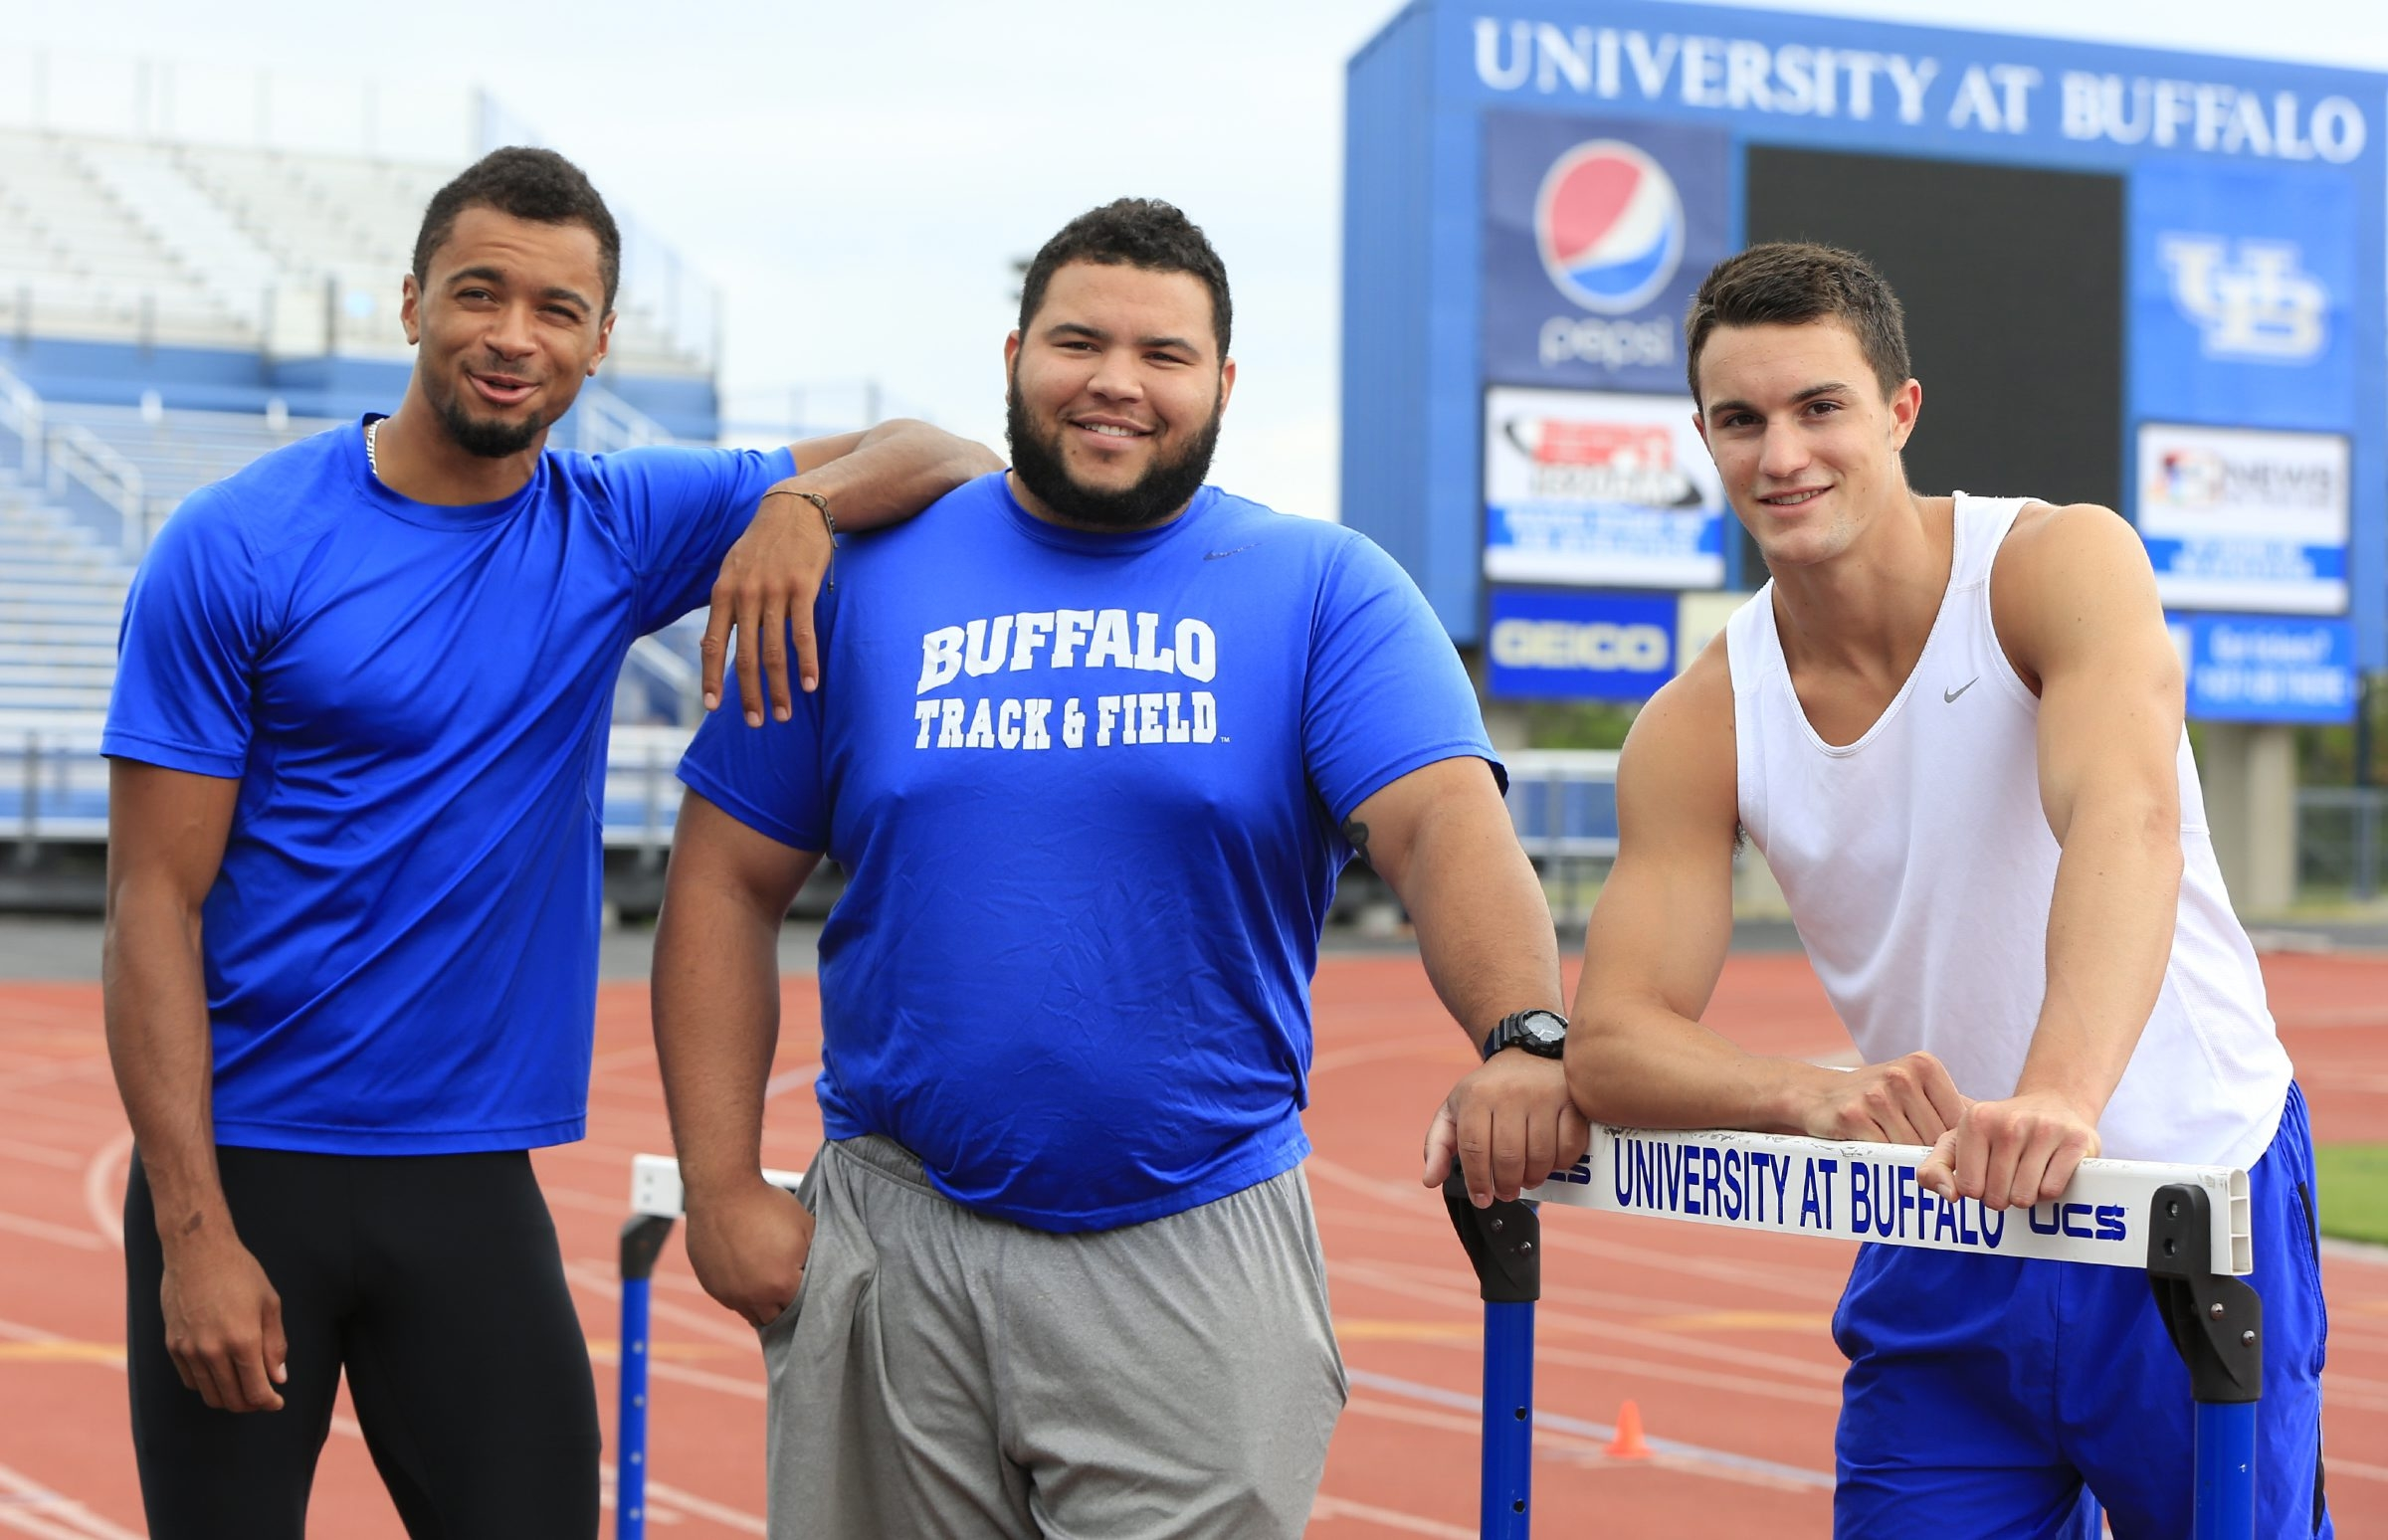 Five-time All-American senior shot putter Jonathan Jones has a goal to qualify for the Olympic Games in 2016 or 2020.